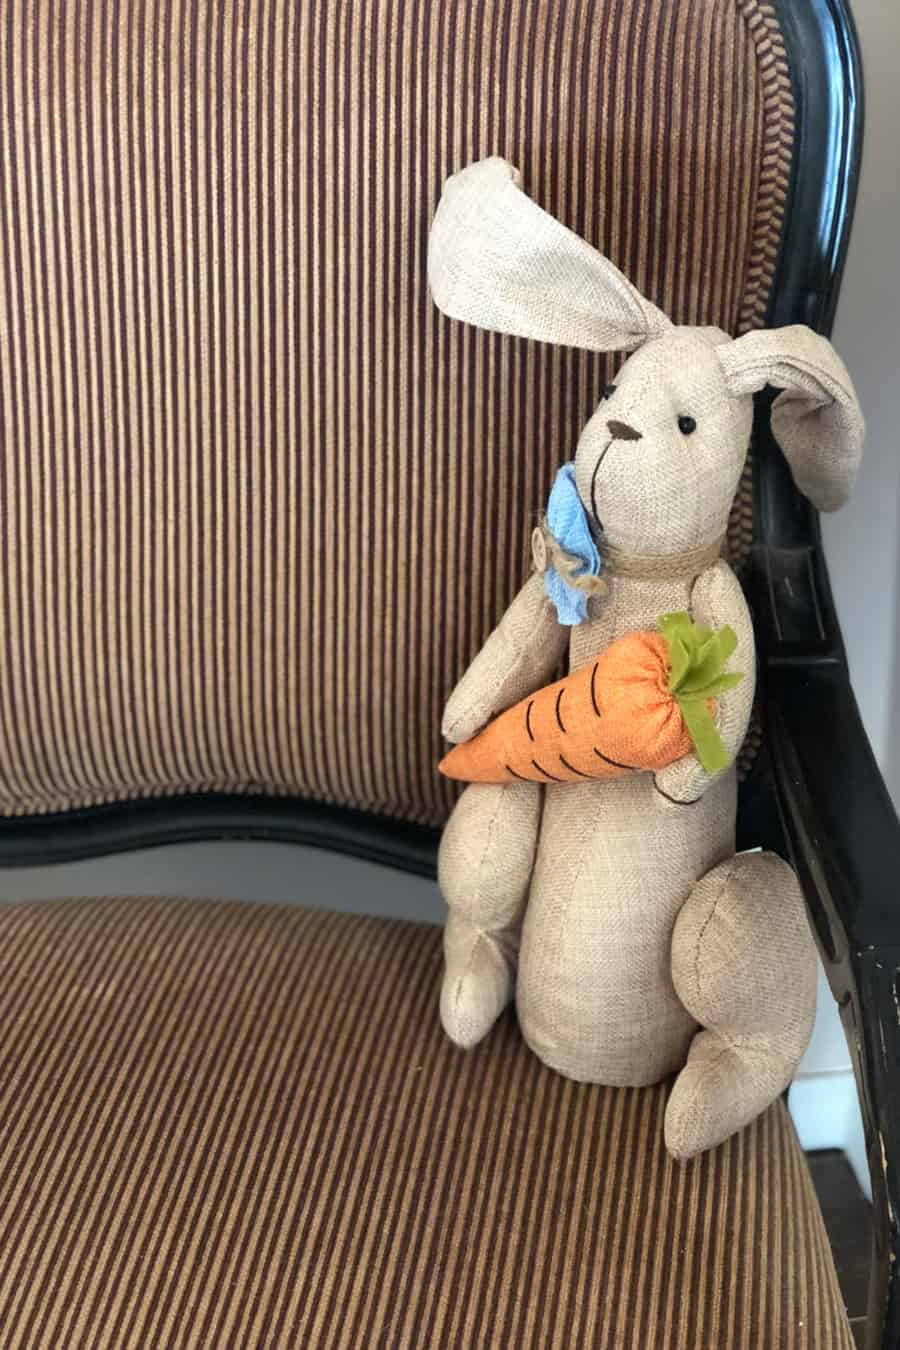 Easter bunny stuffed animal on a chair